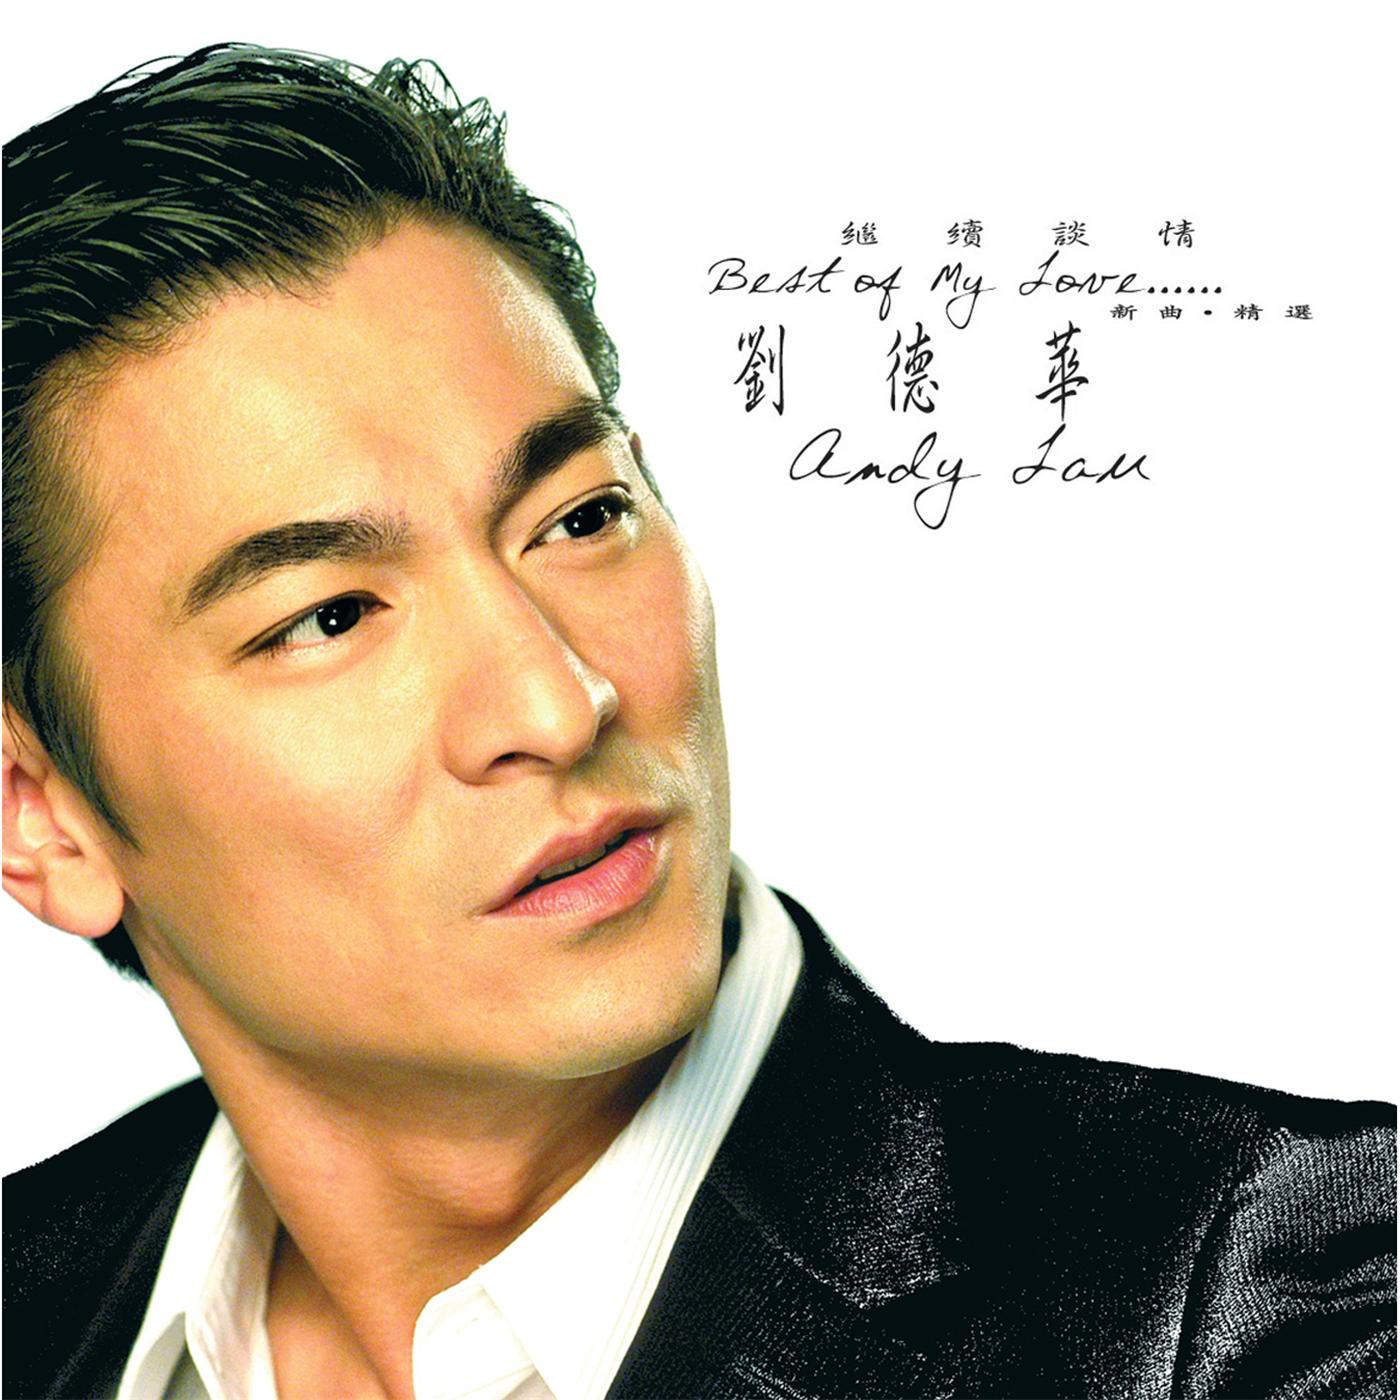 iTunes AAC music share: 劉德華-繼續談情 新歌 & 精選 [iTunes Plus aac from HK store]